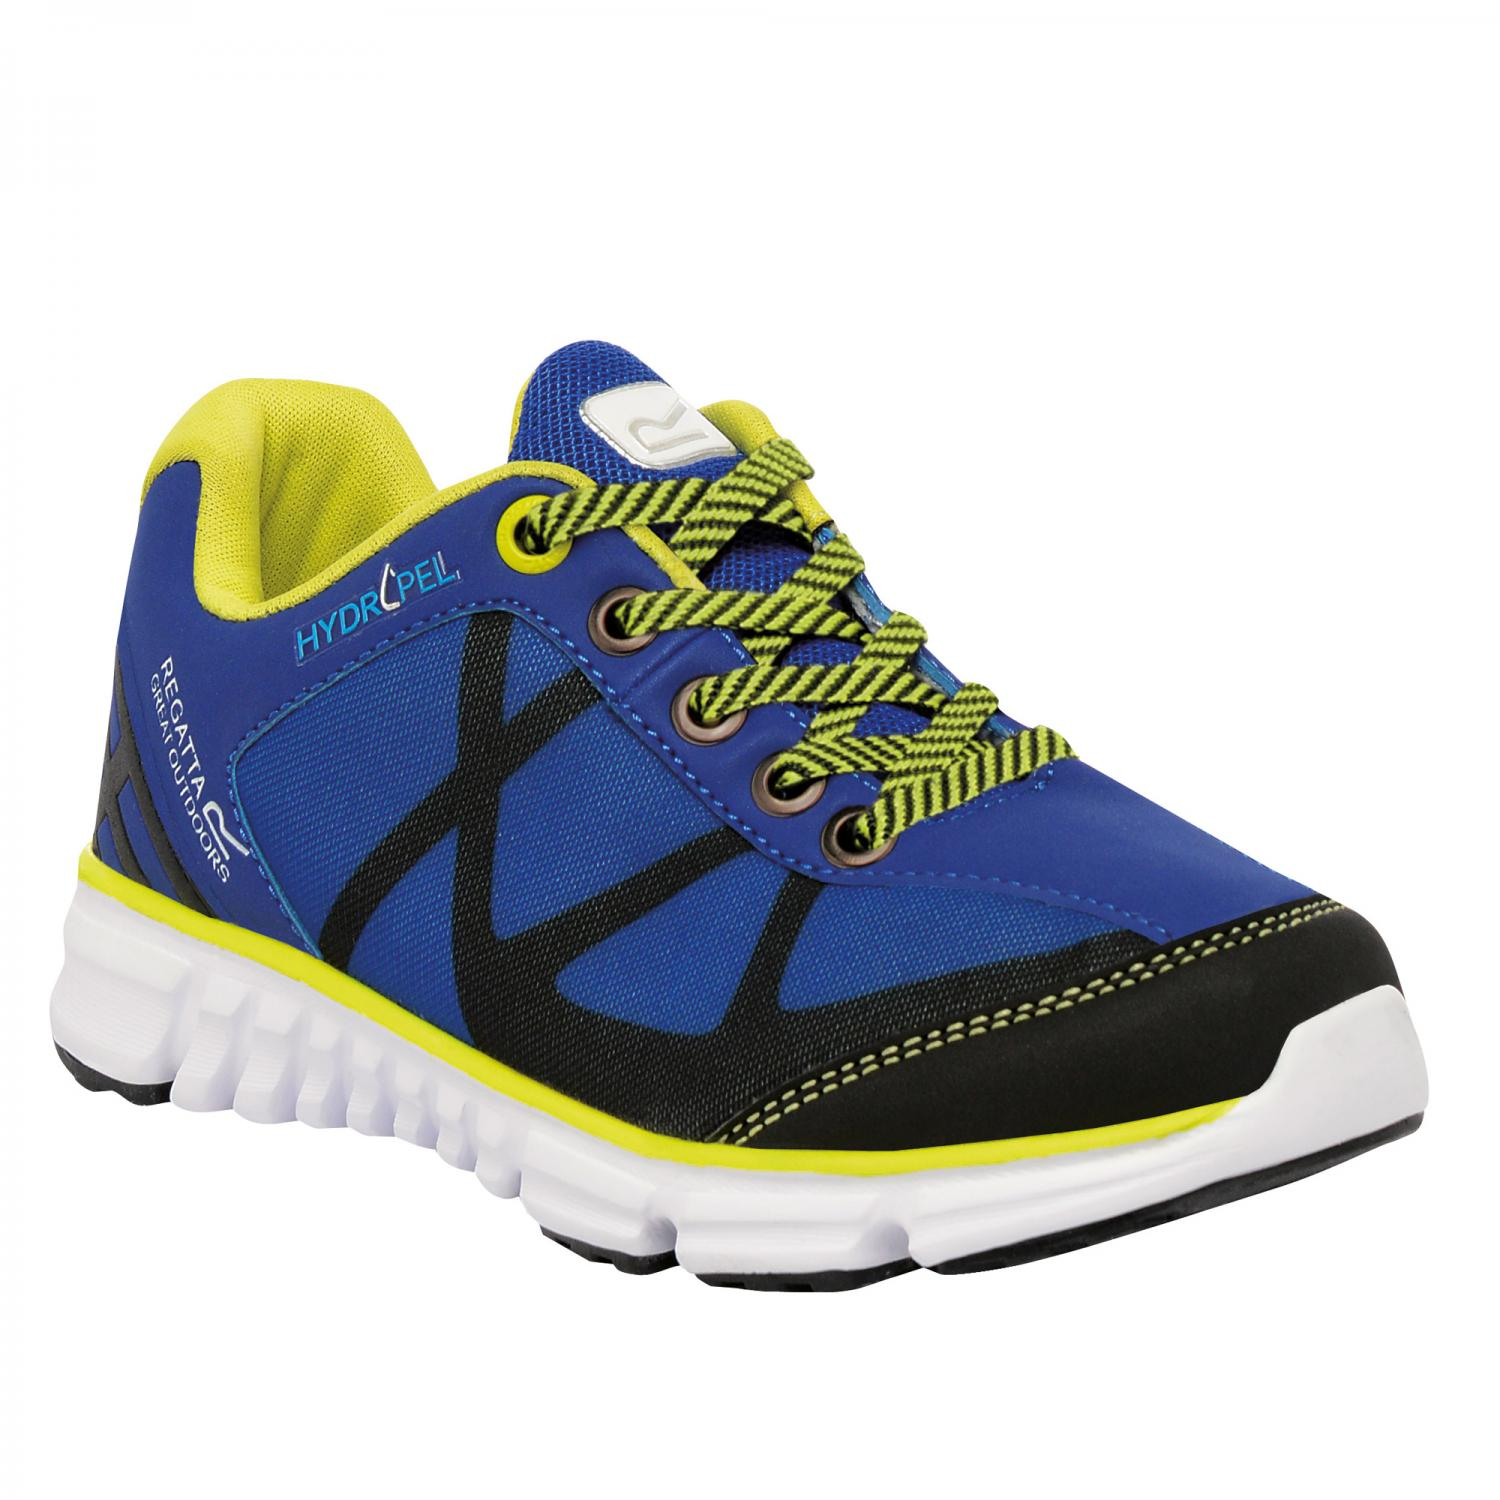 Hyper-Trail Low Junior Shoe Blue Neon